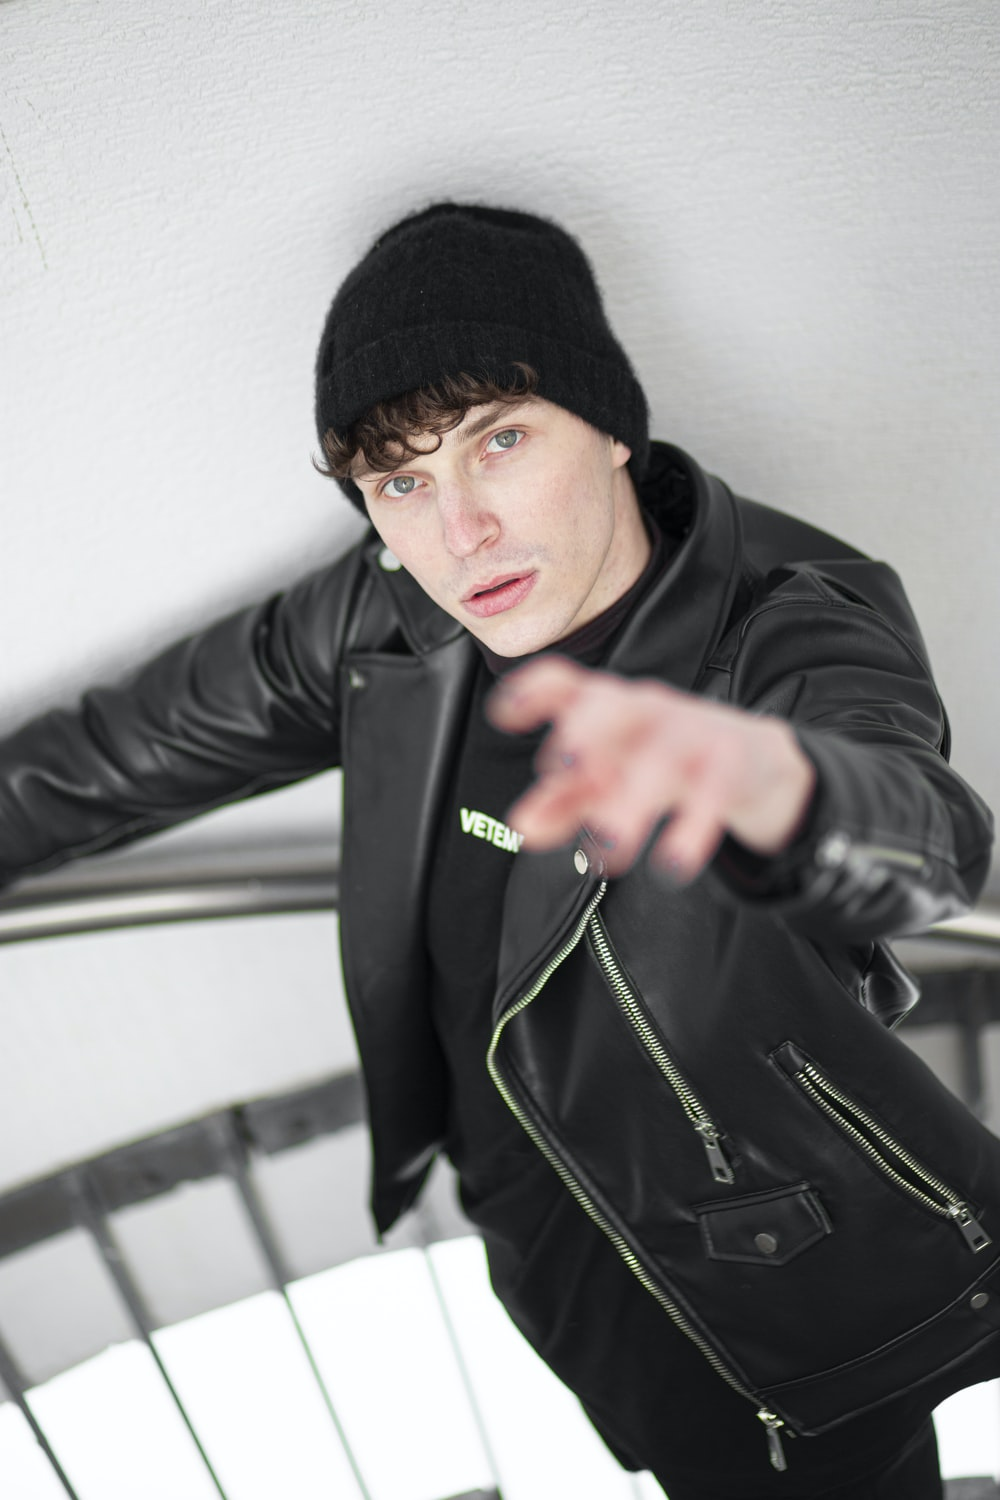 man in black knit cap and black leather jacket